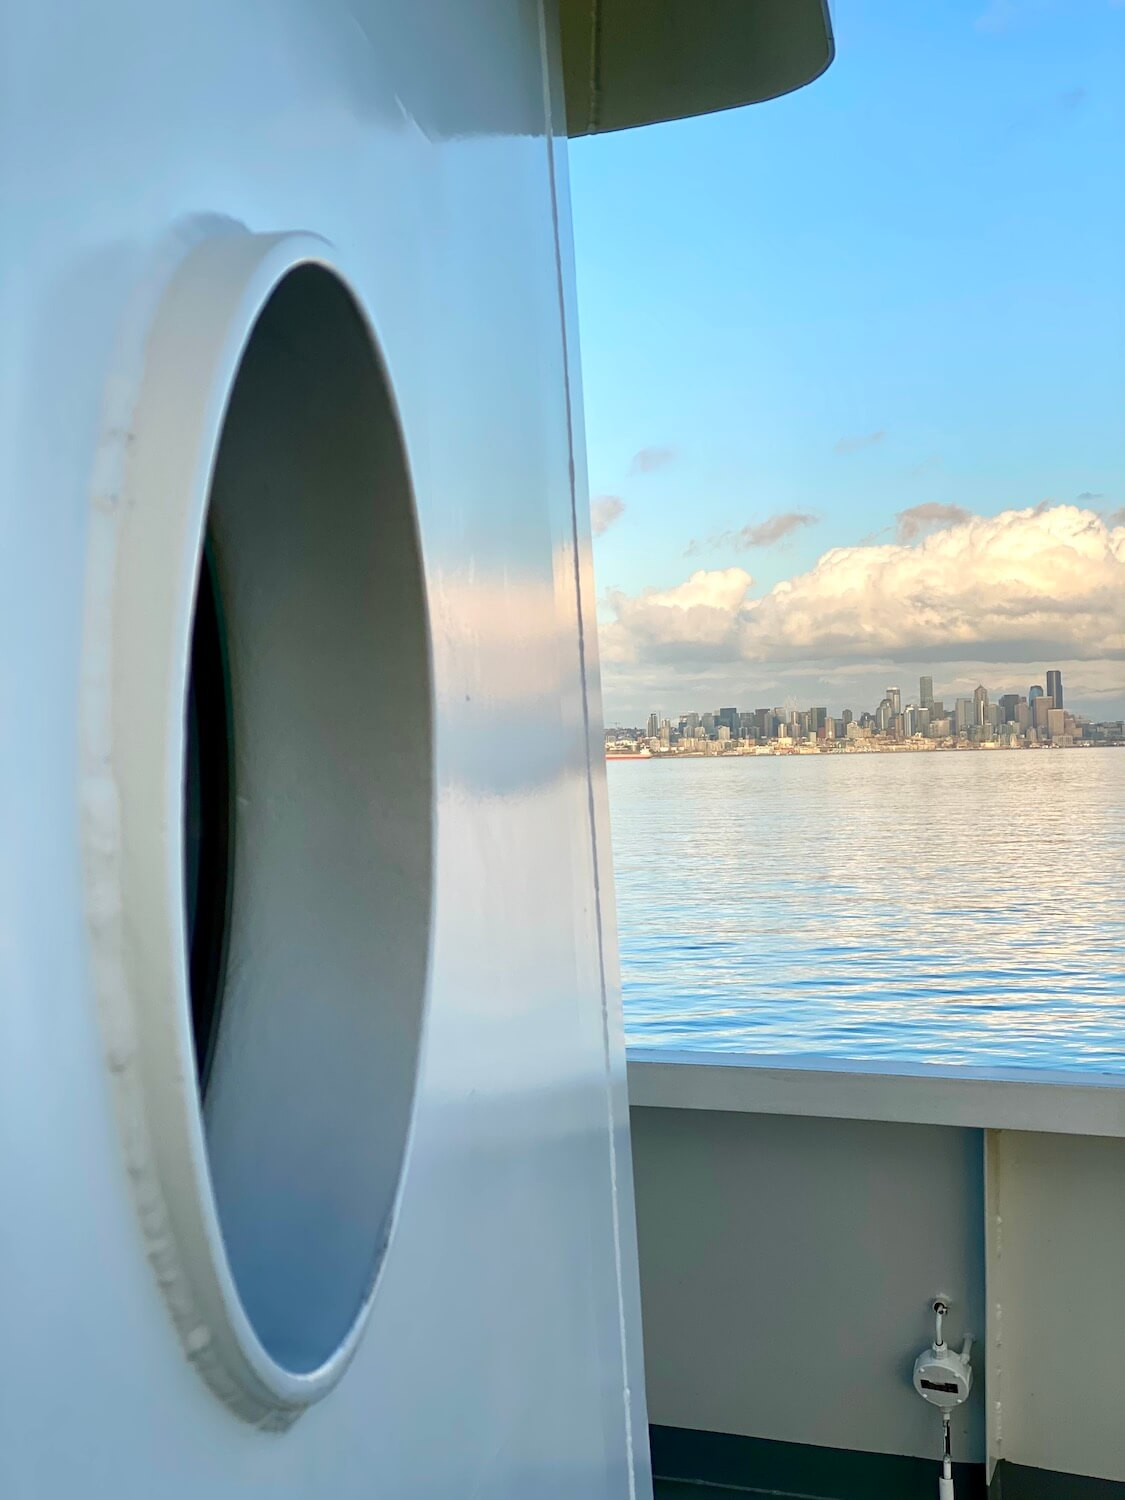 A view of the skyline of Downtown Seattle as viewed from beside a porthole on a Washington State Ferry boat traveling between Bainbridge Island and Seattle.  The water is calm and puffy clouds swim around in blue Spring skies above the city scape.